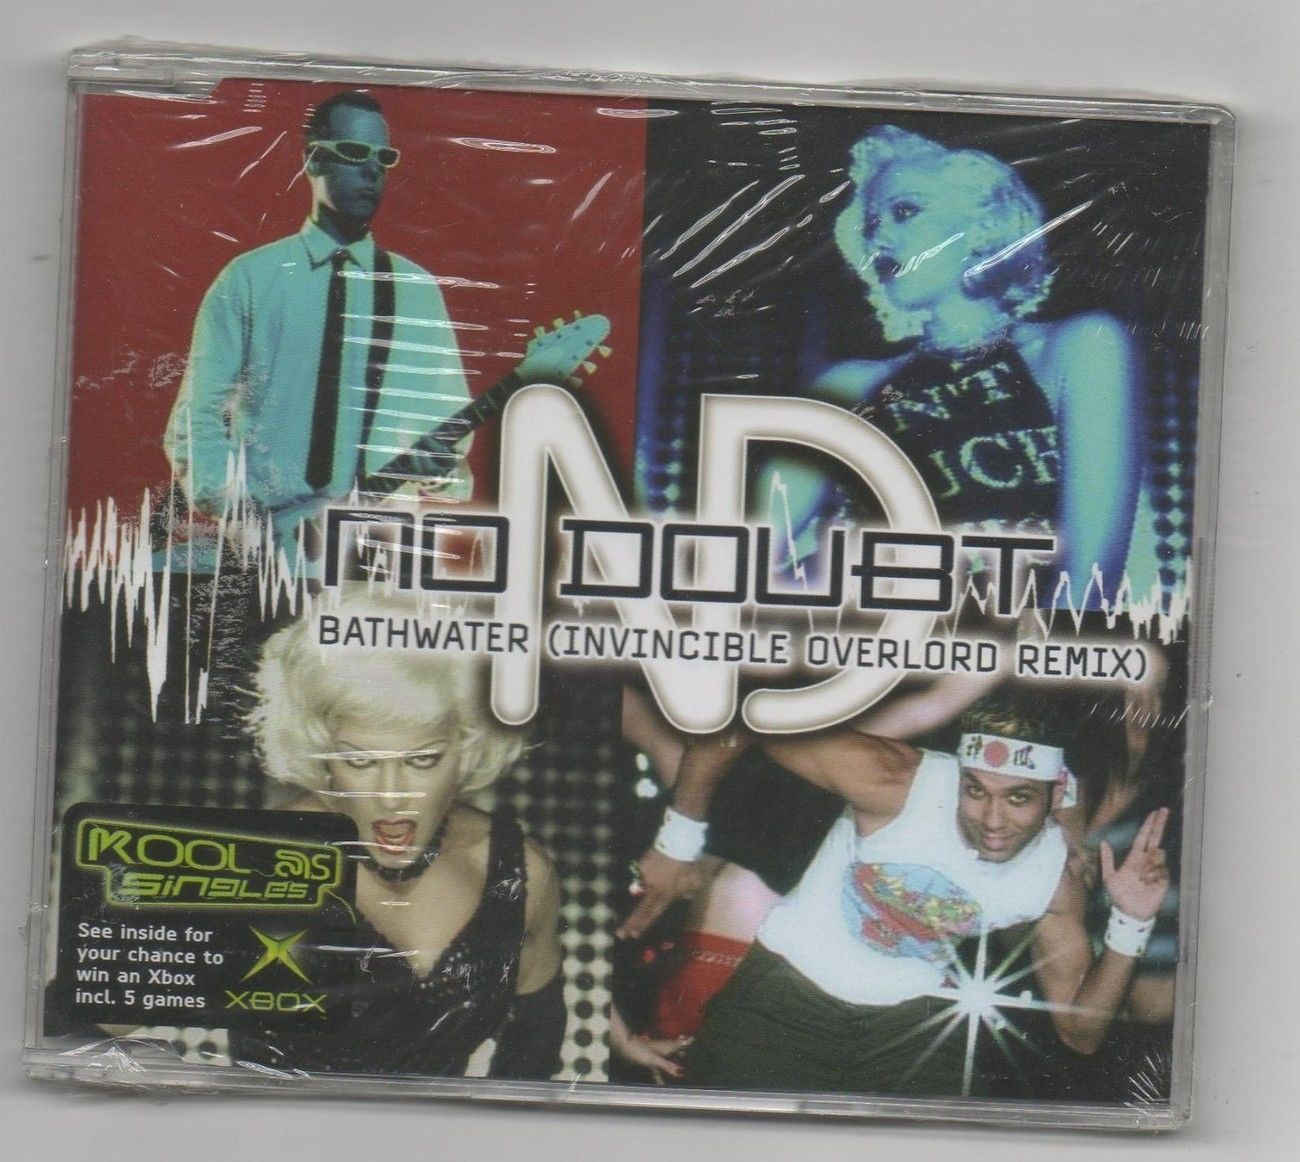 Primary image for No Doubt Bathwater Remixes 2004 CD Gwen Stefani